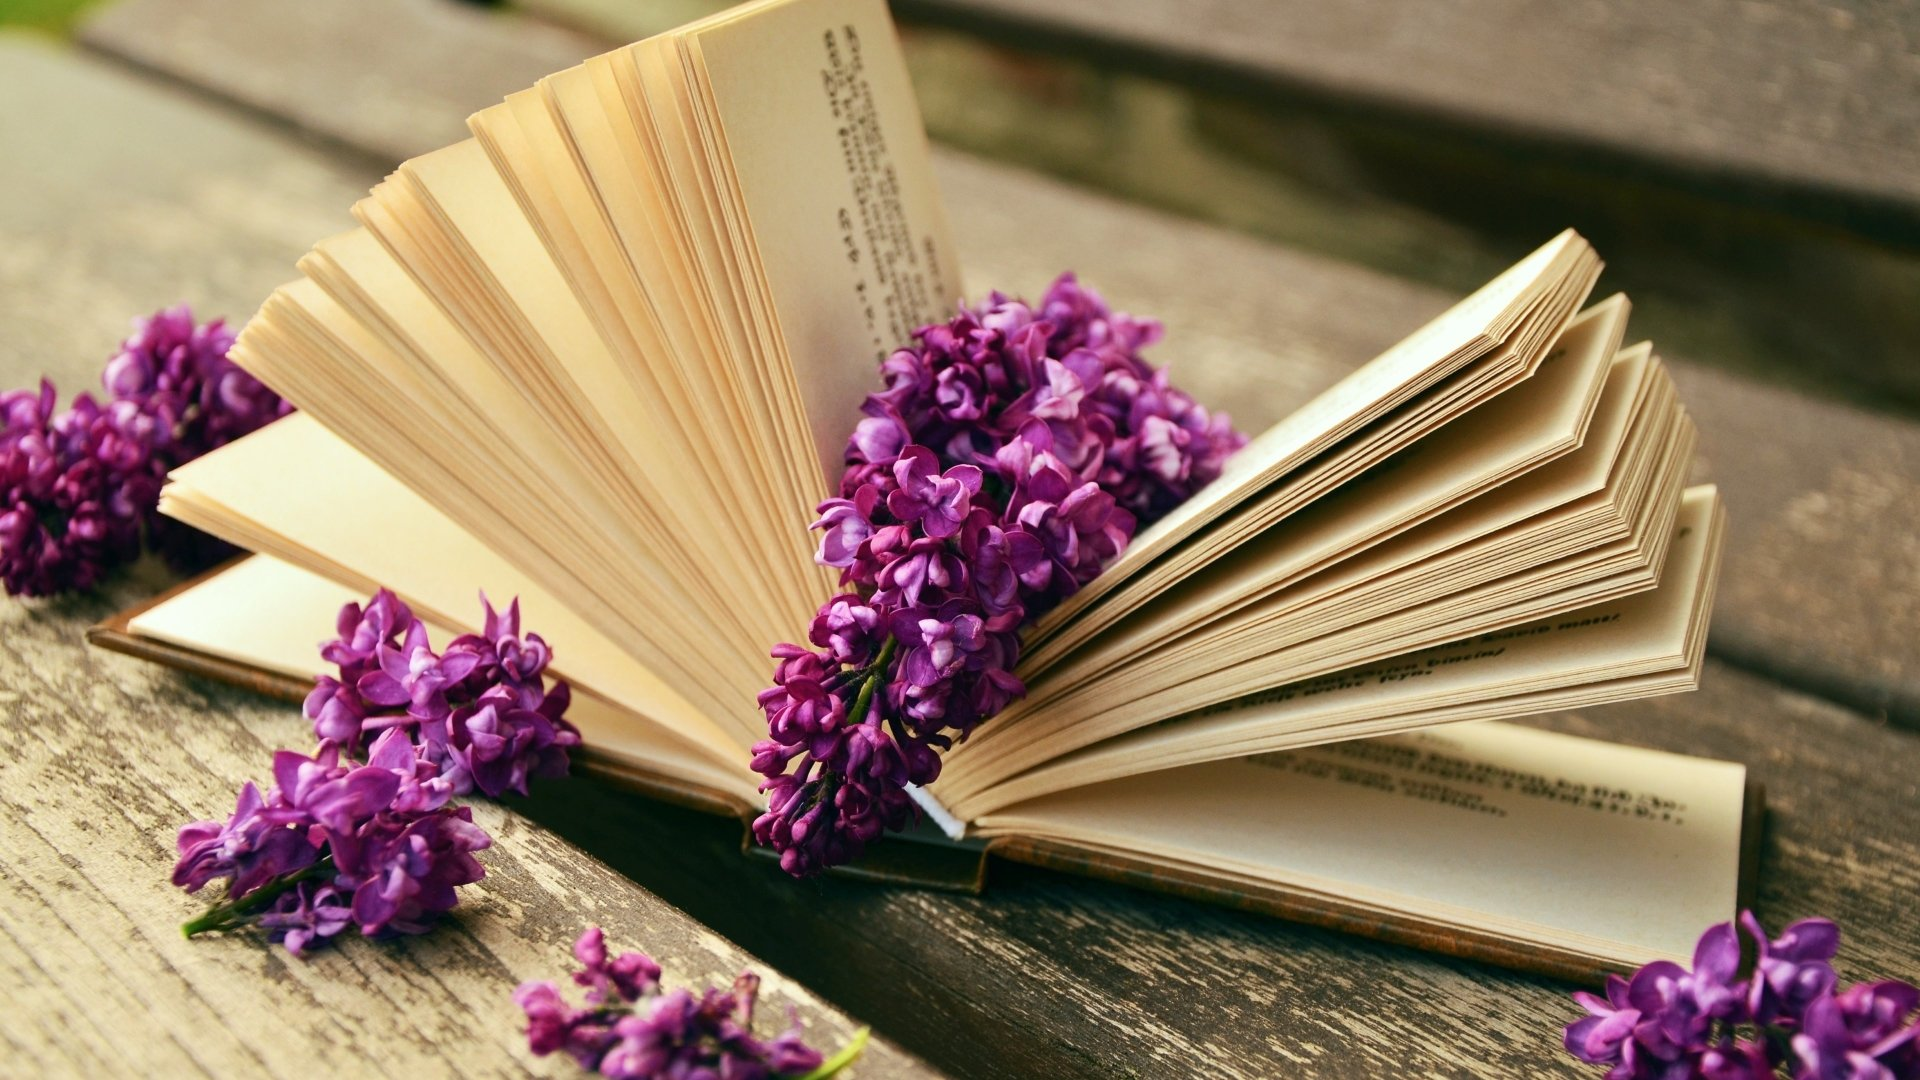 Man Made - Book  Lilac Flower Still Life Wallpaper